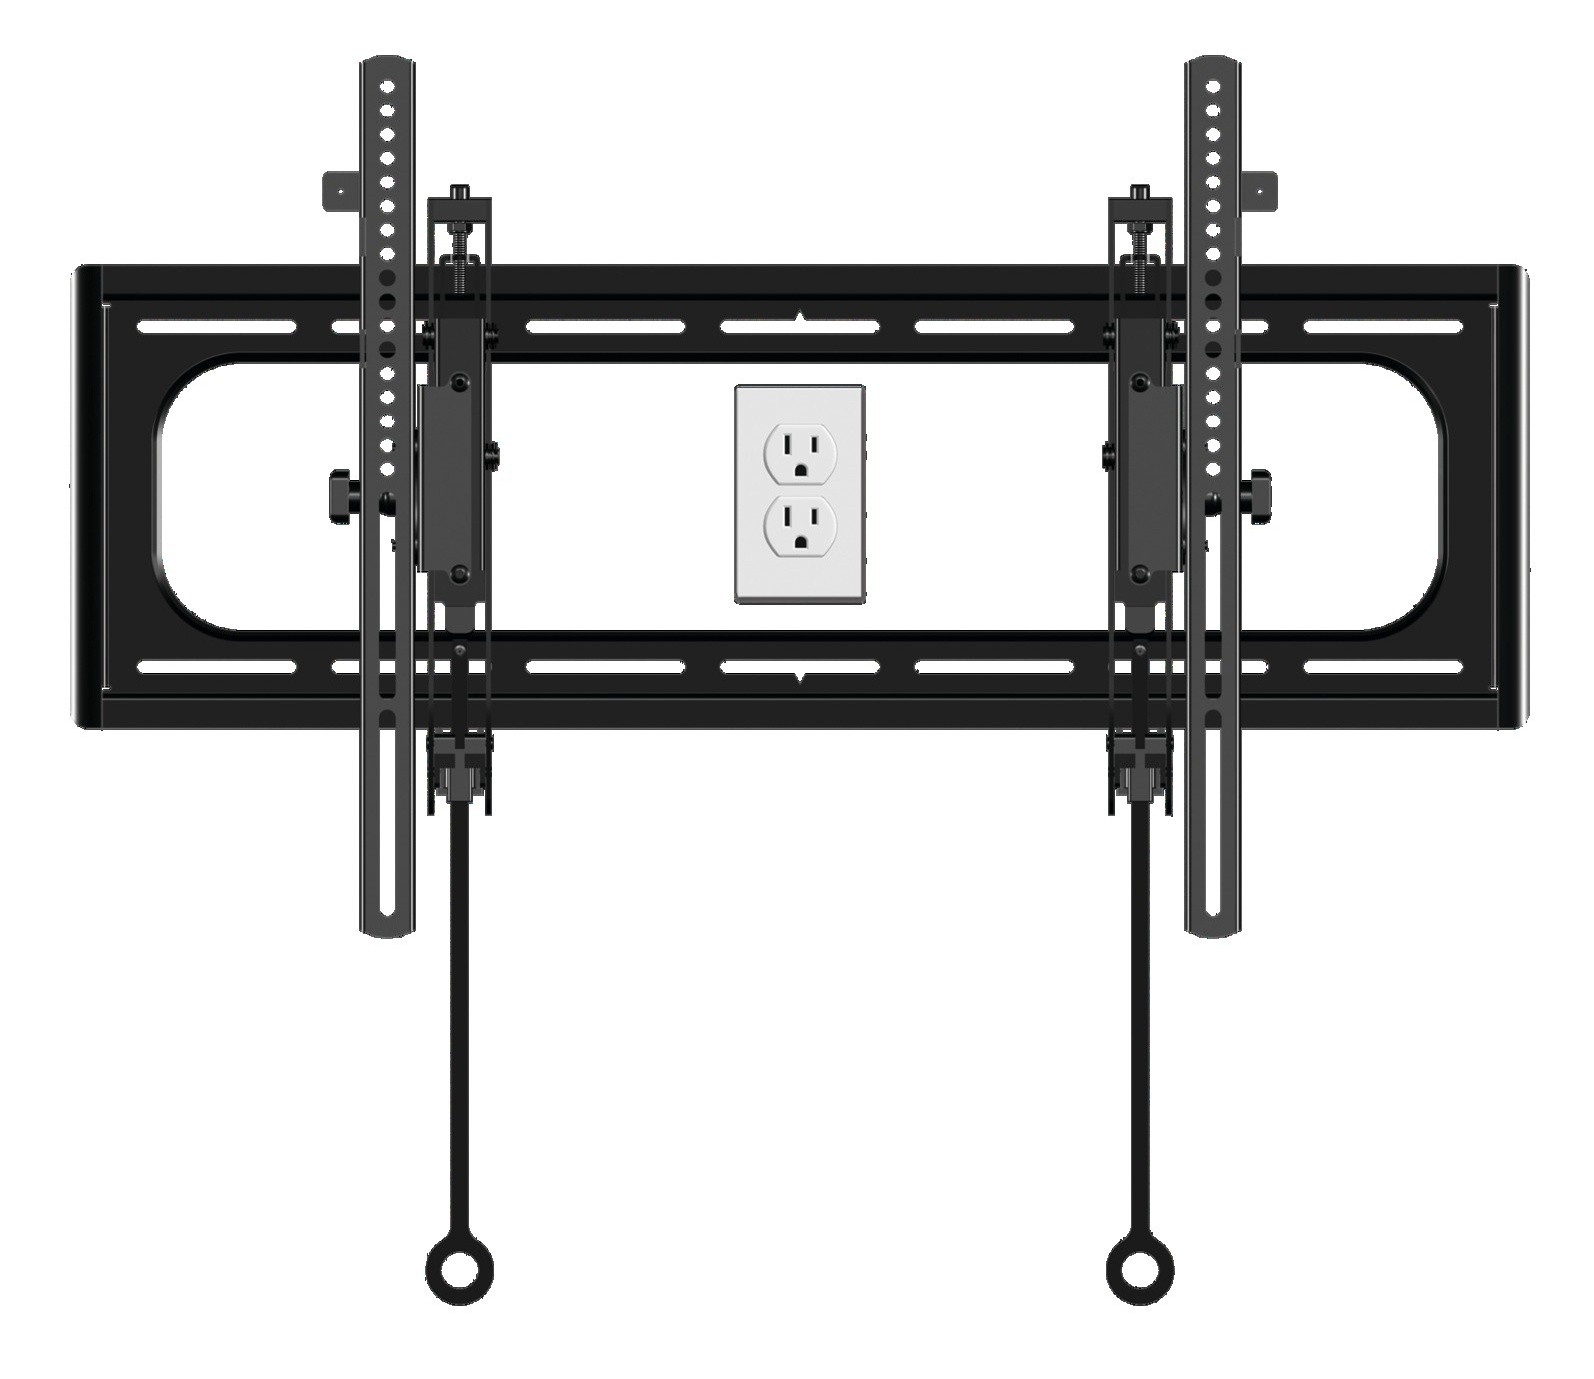 TV mount wall plate template with opening for outlet